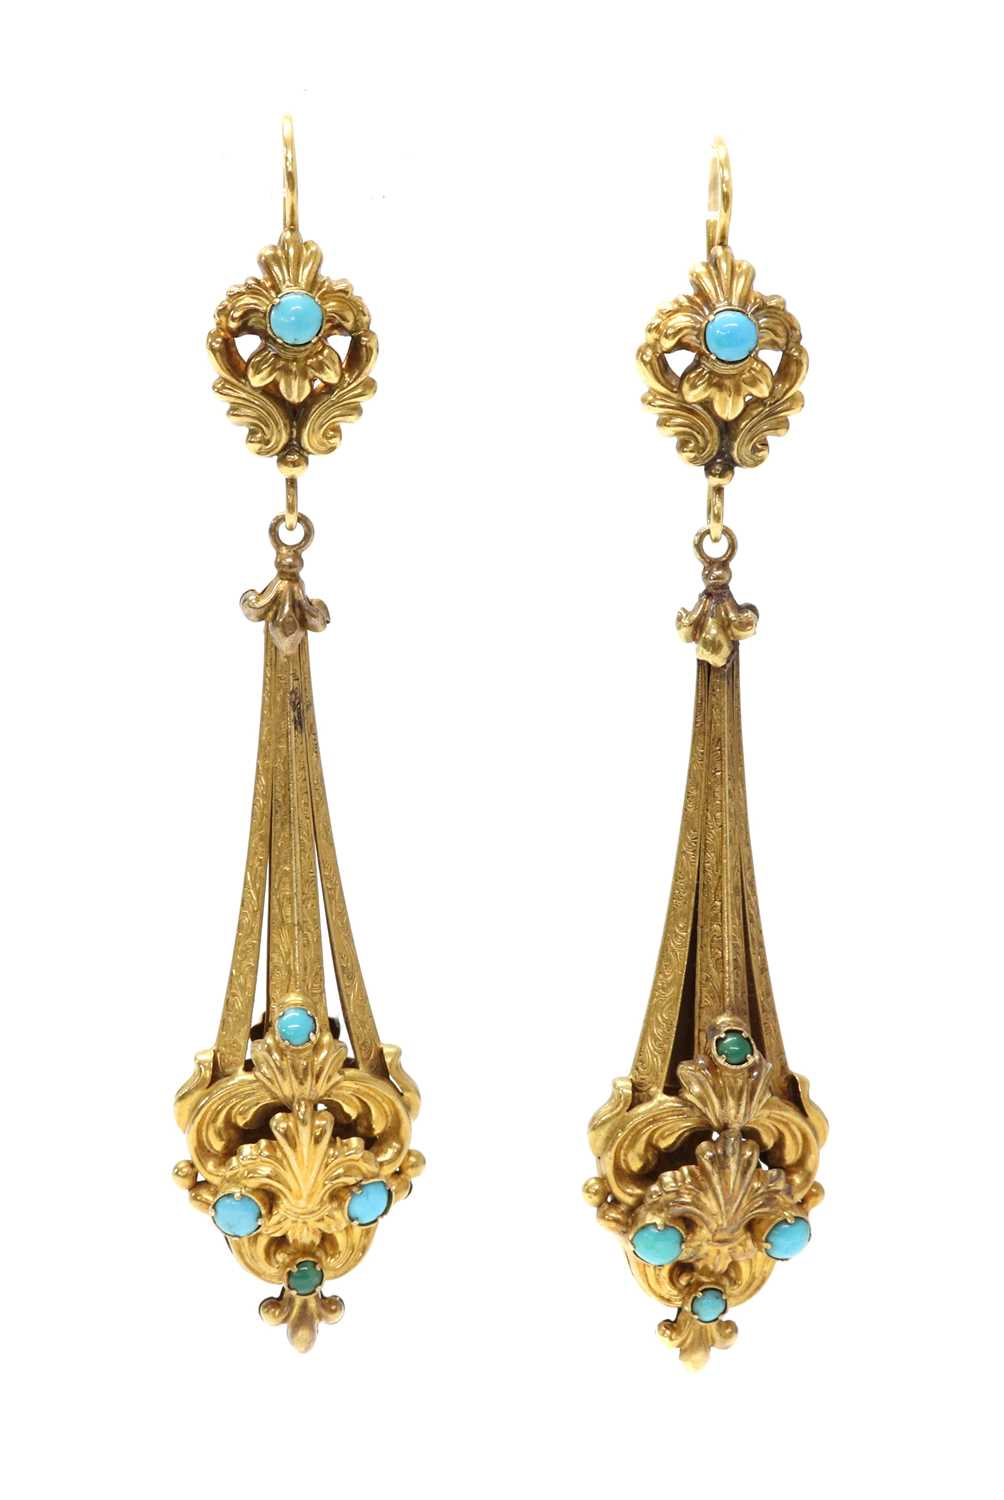 Lot 27 - A pair of Regency gold and turquoise set drop earrings